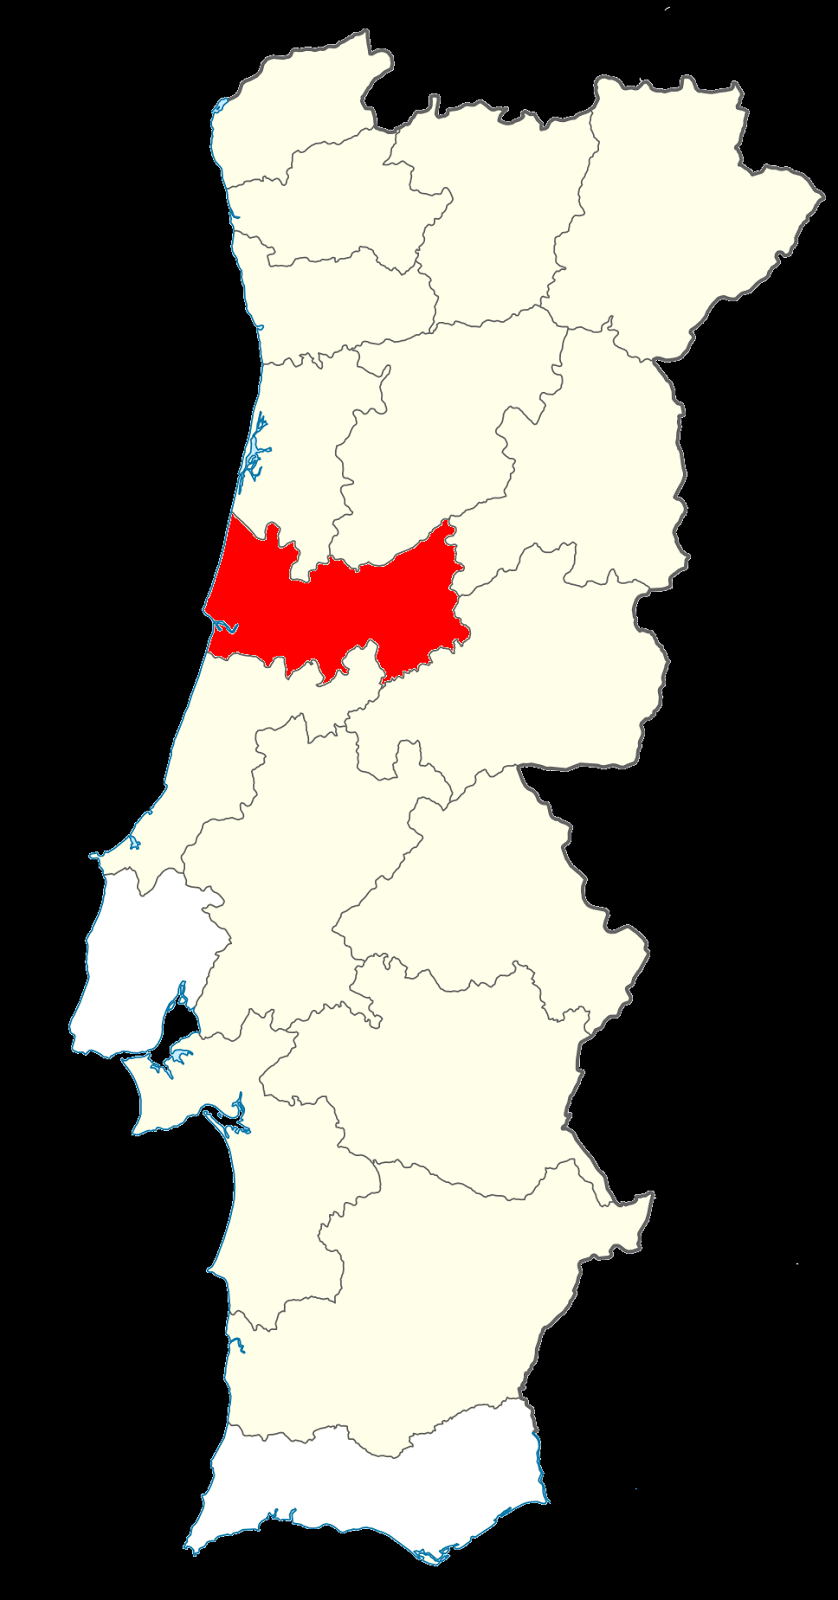 http://en.wikipedia.org/wiki/Districts_of_Portugal